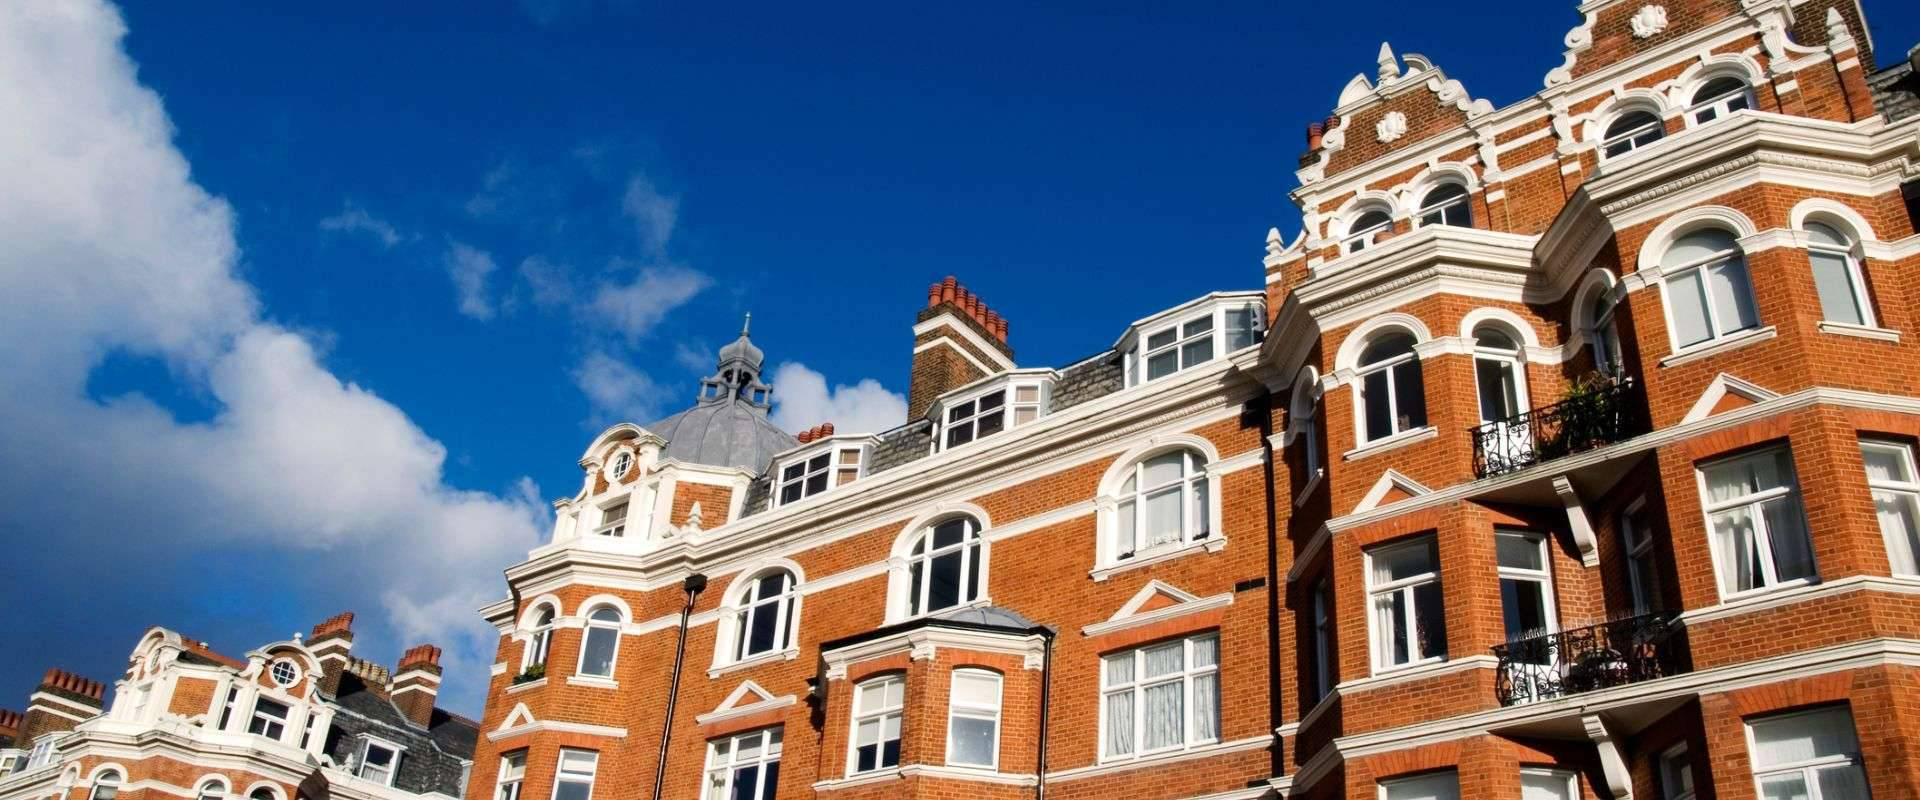 Services nox hotels | west hampstead london